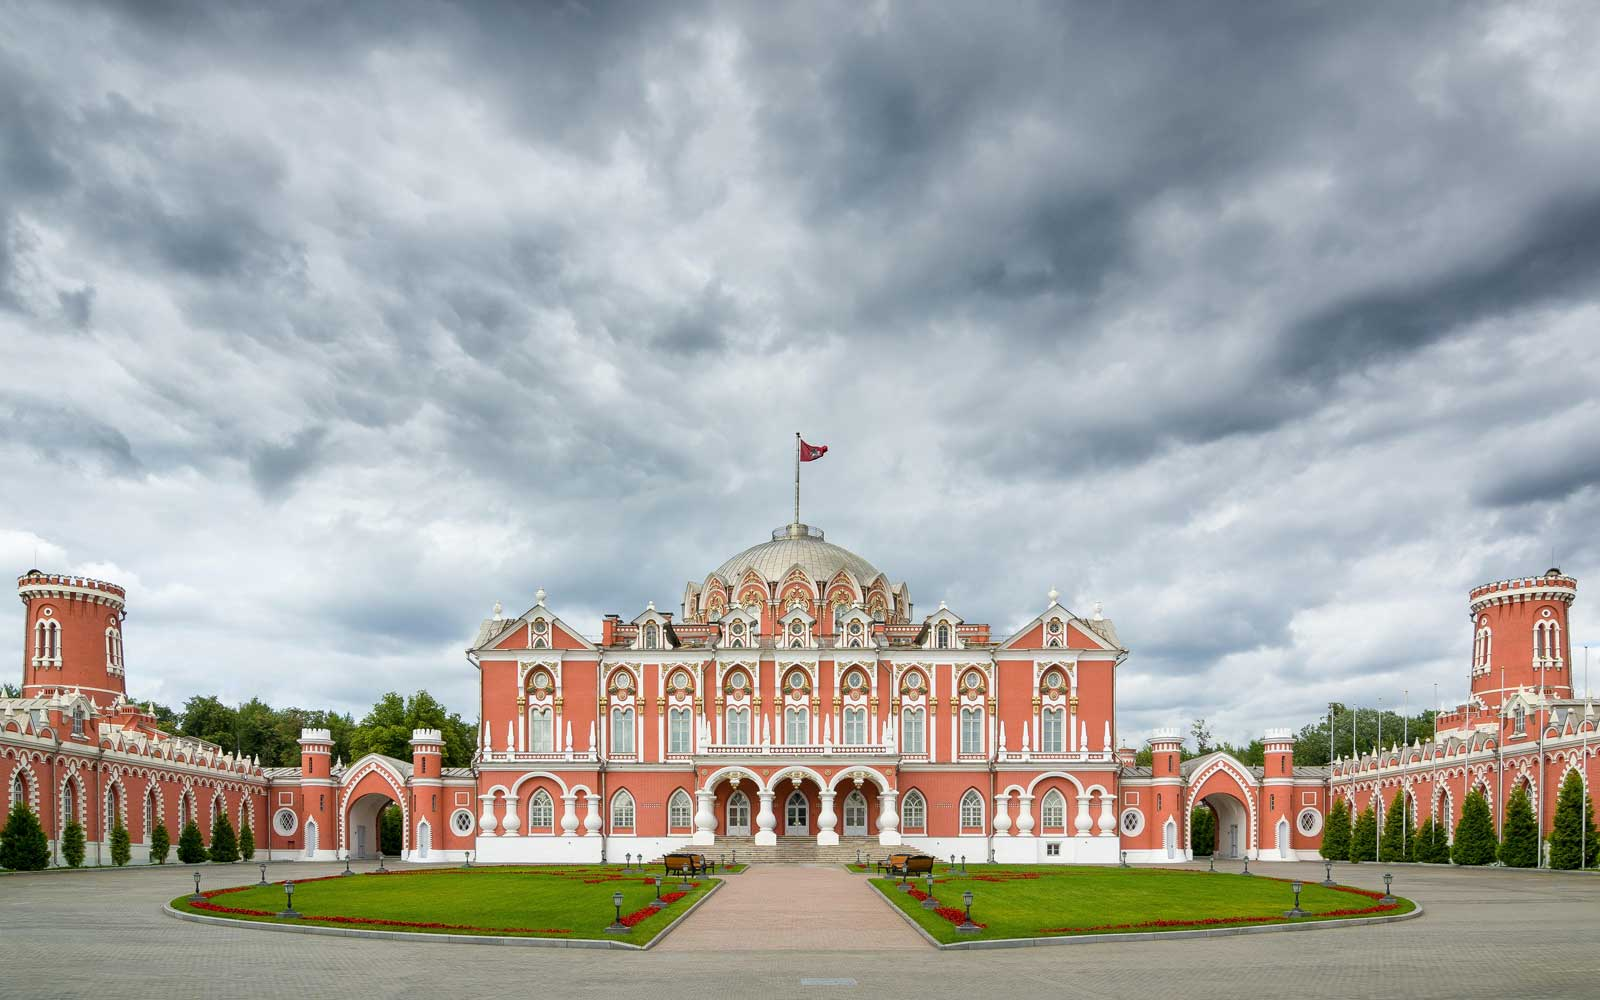 Exterior of the Petroff Palace, Moscow, Russia